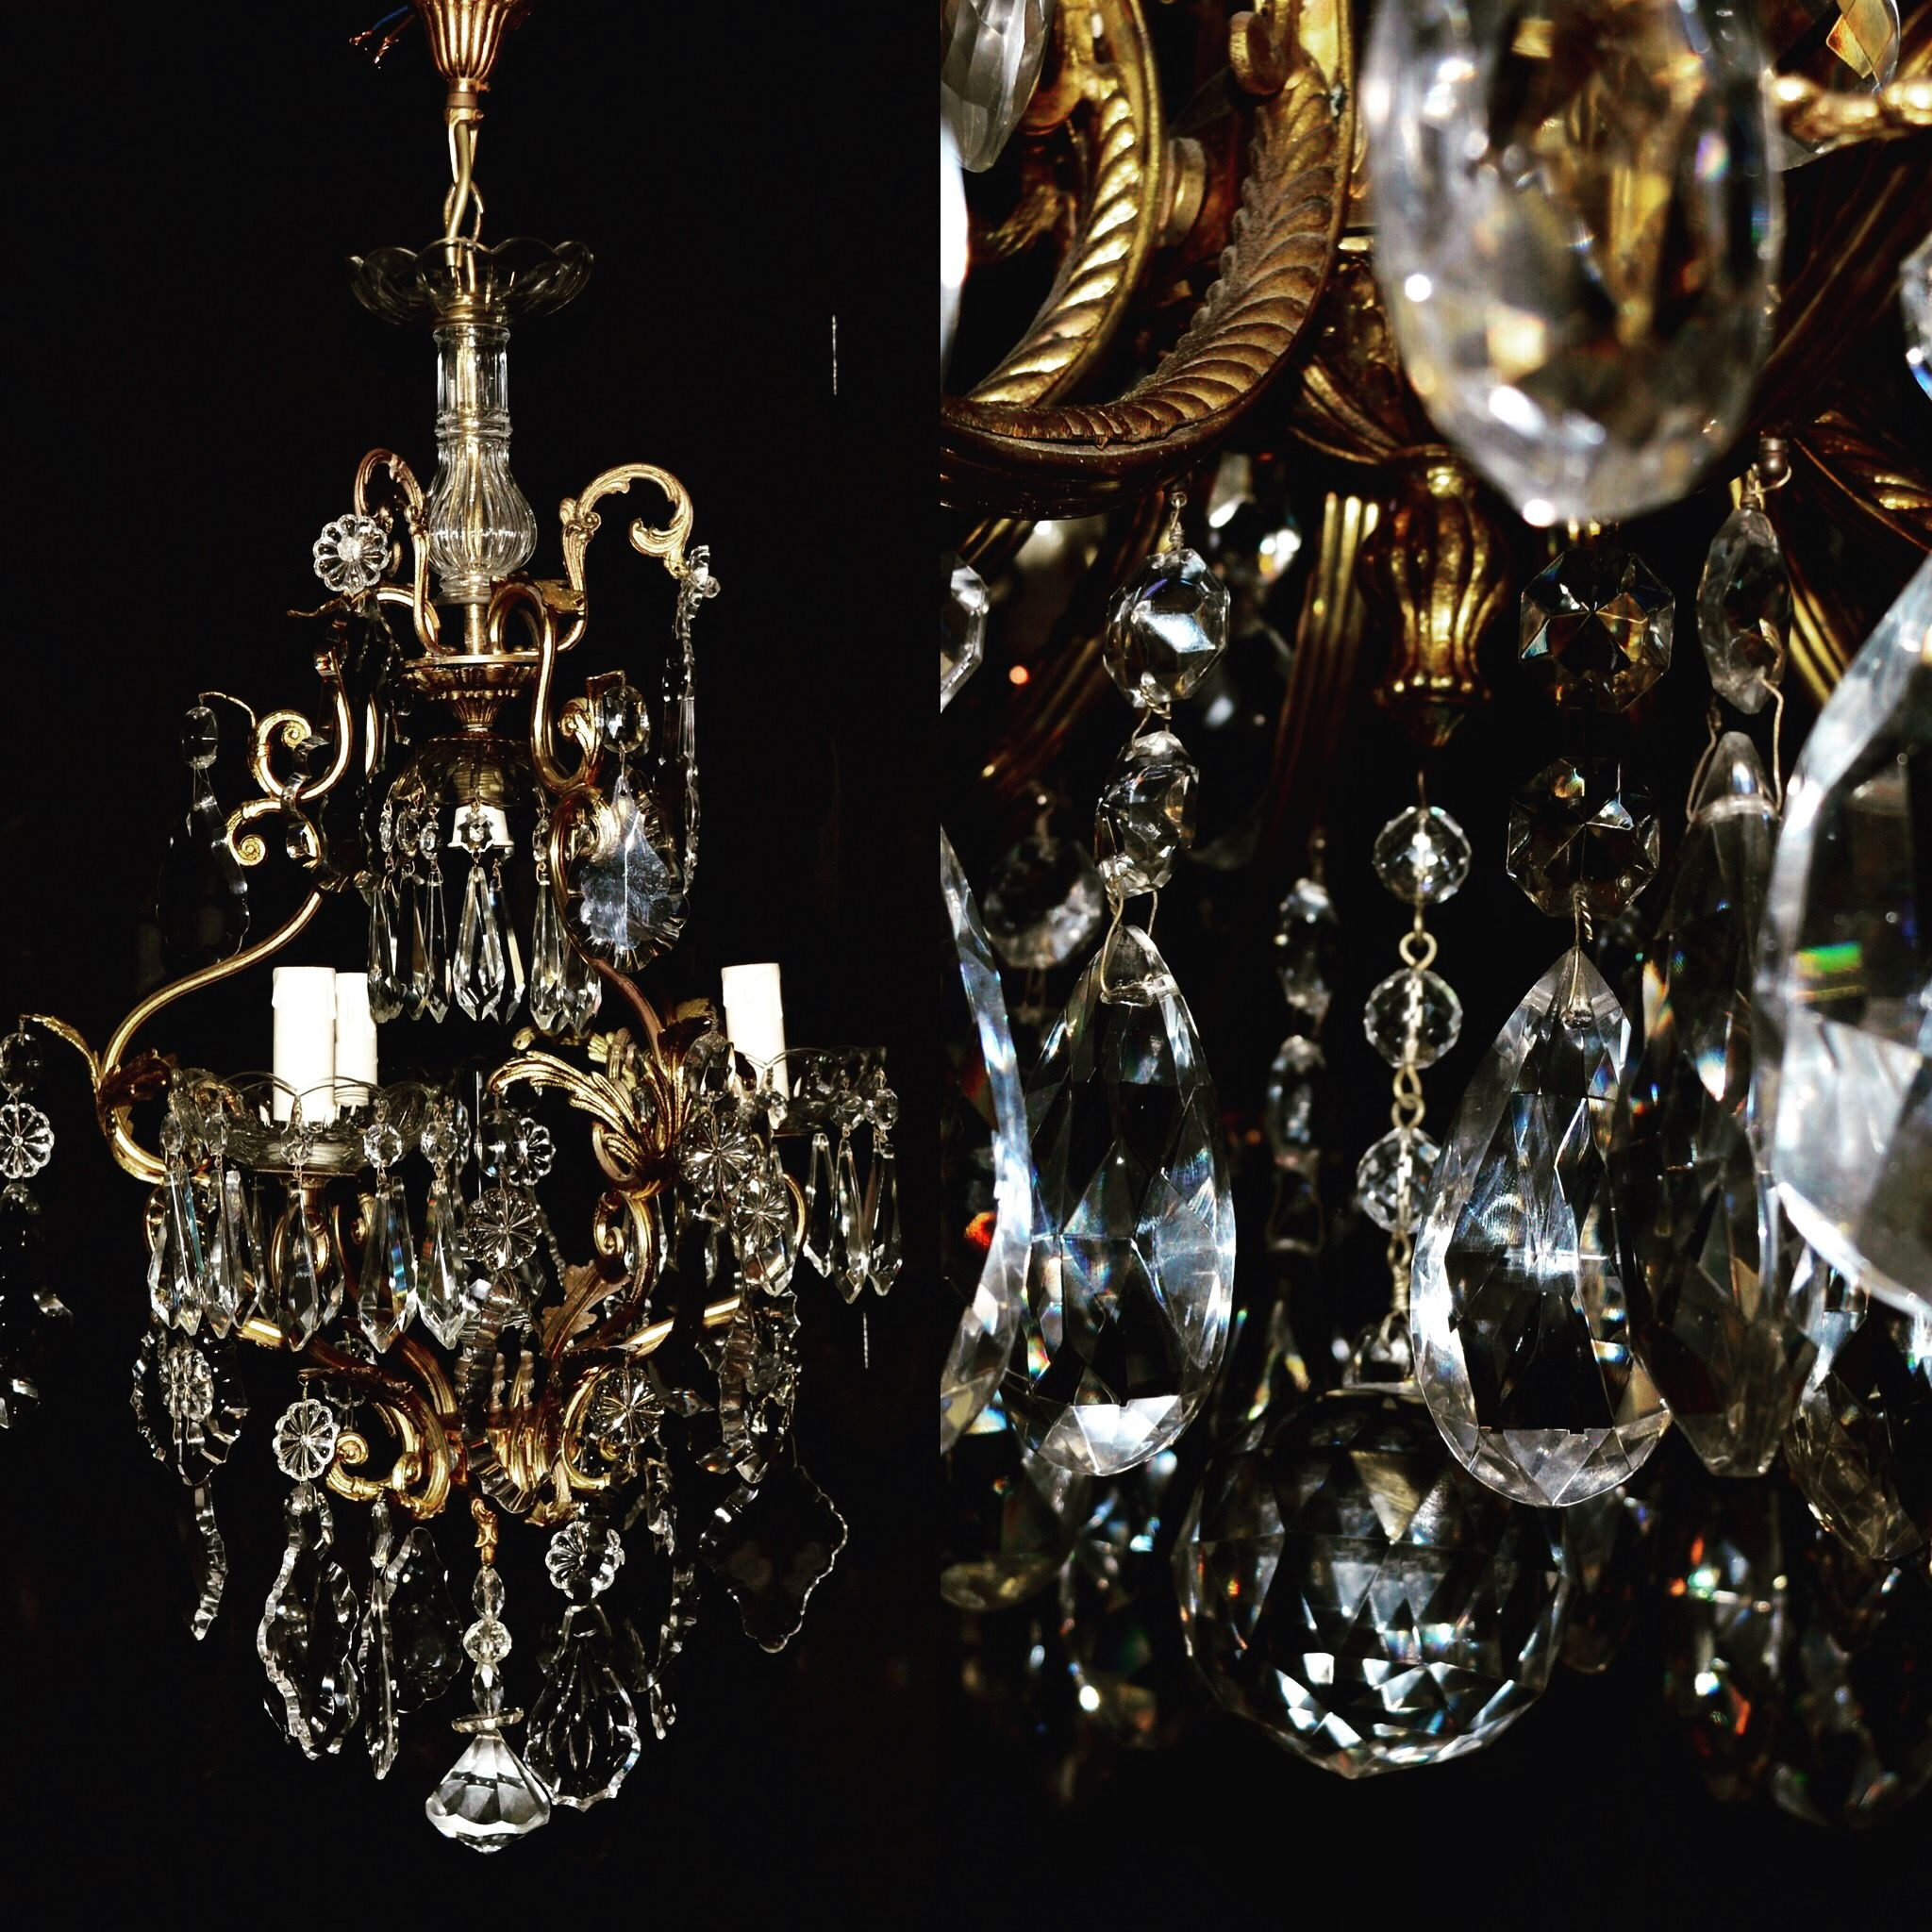 pin for sale wiring chandeliers us crystal bavarian free lighting chandelier vintage comp amethyst usa murano shipping